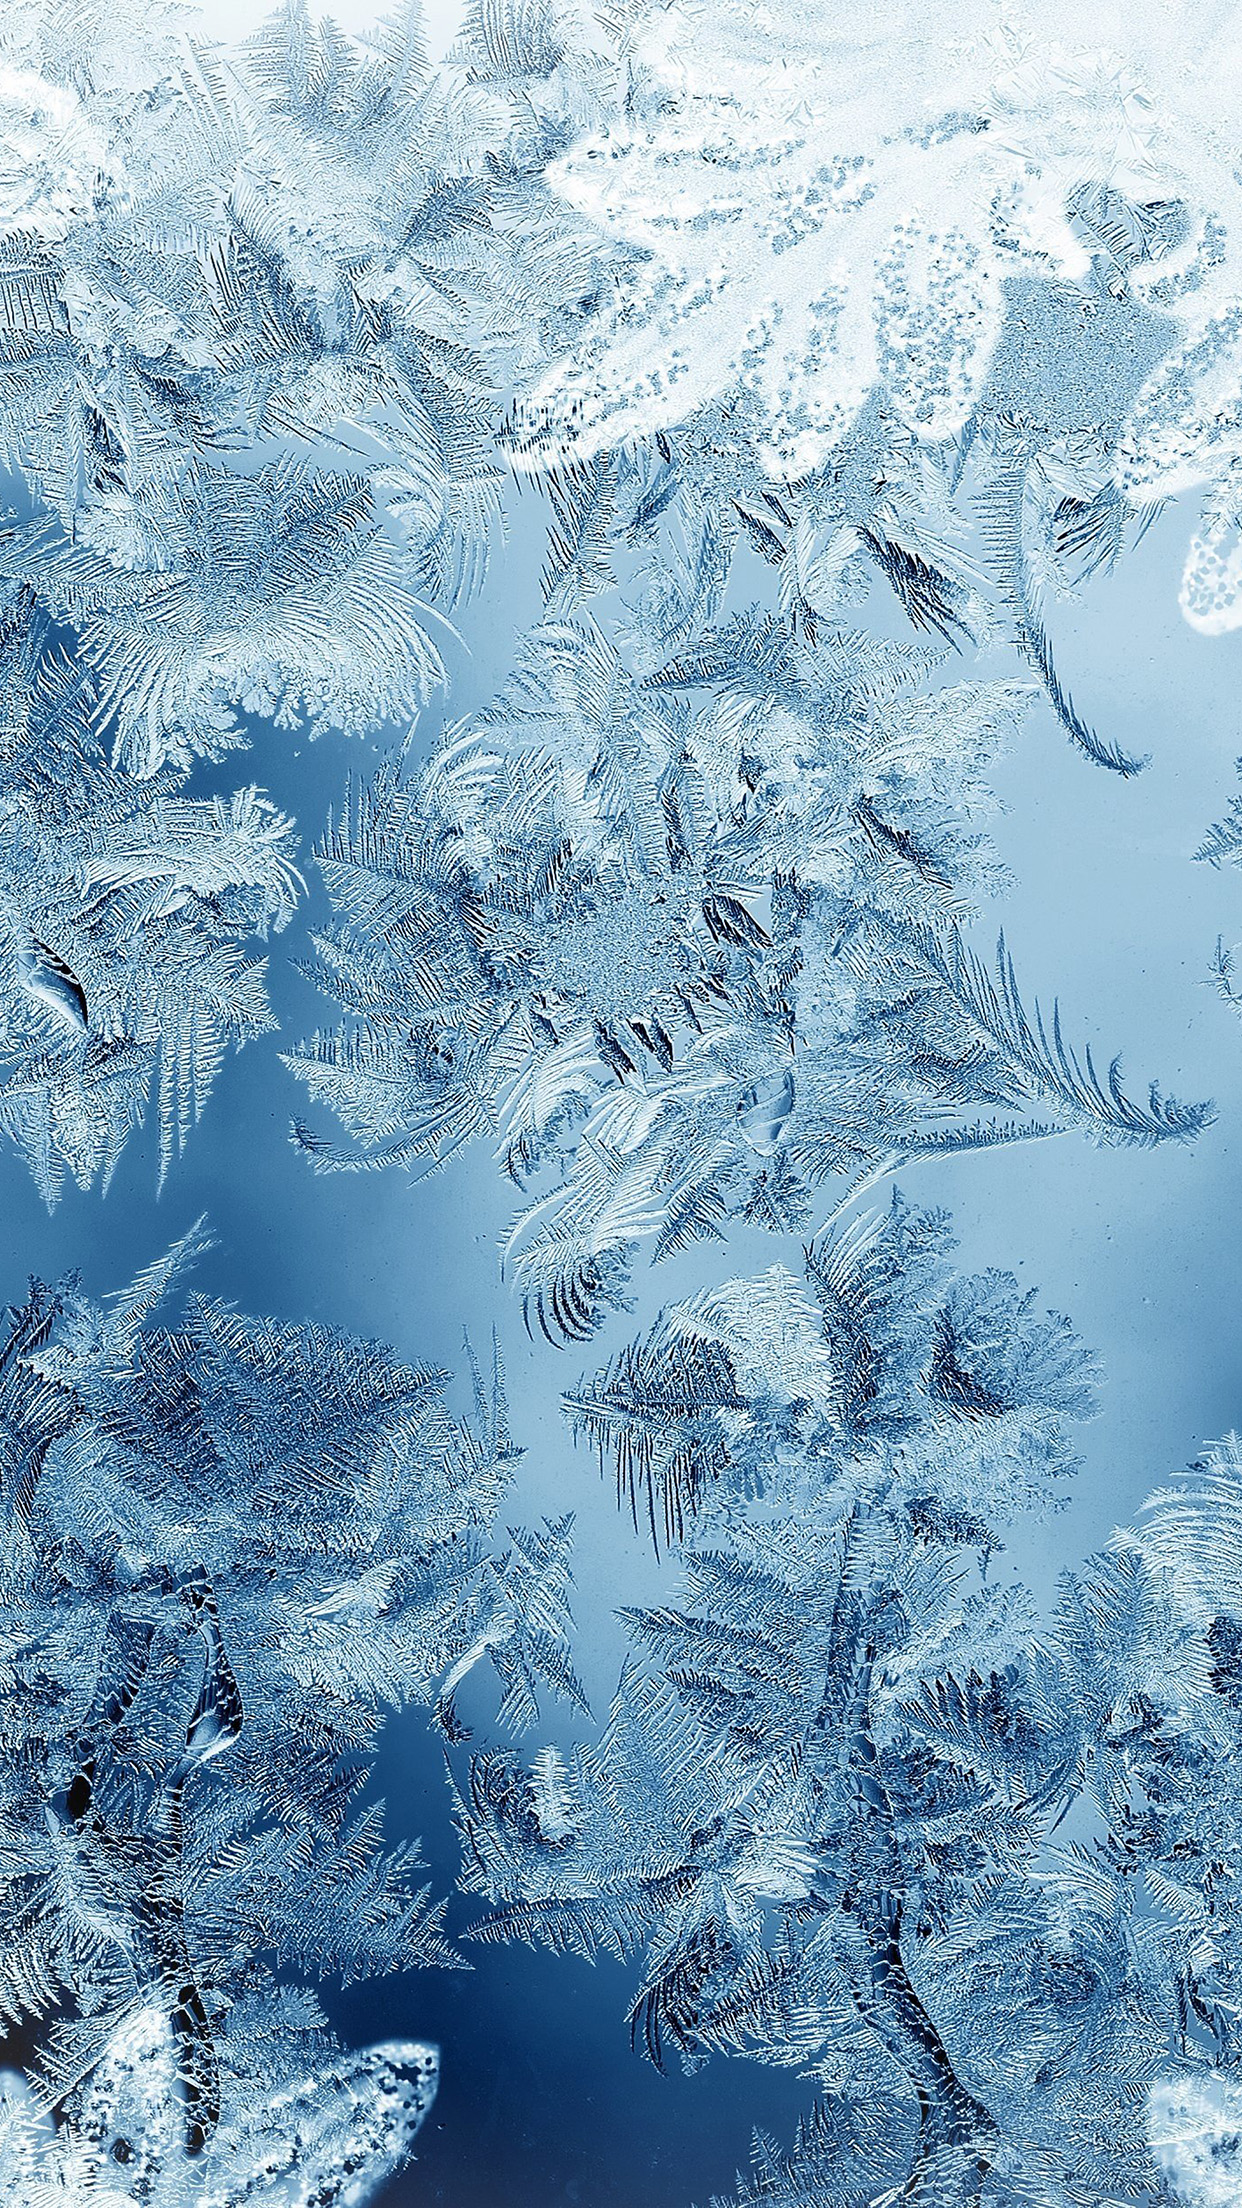 snow christmas iphone 6s wallpaper download iphone 6s 6